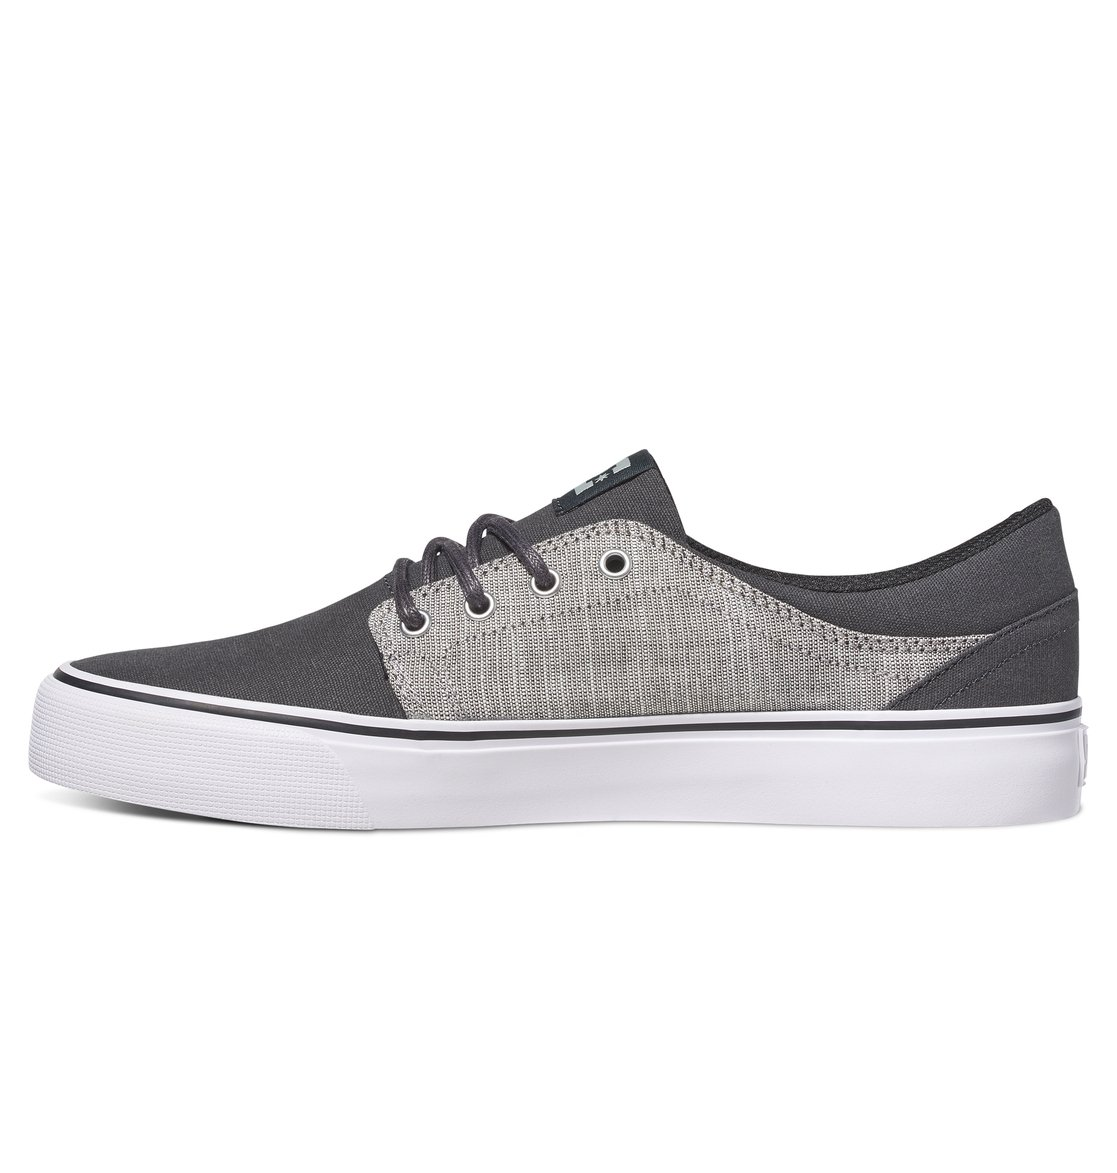 Trase Tx Chaussure